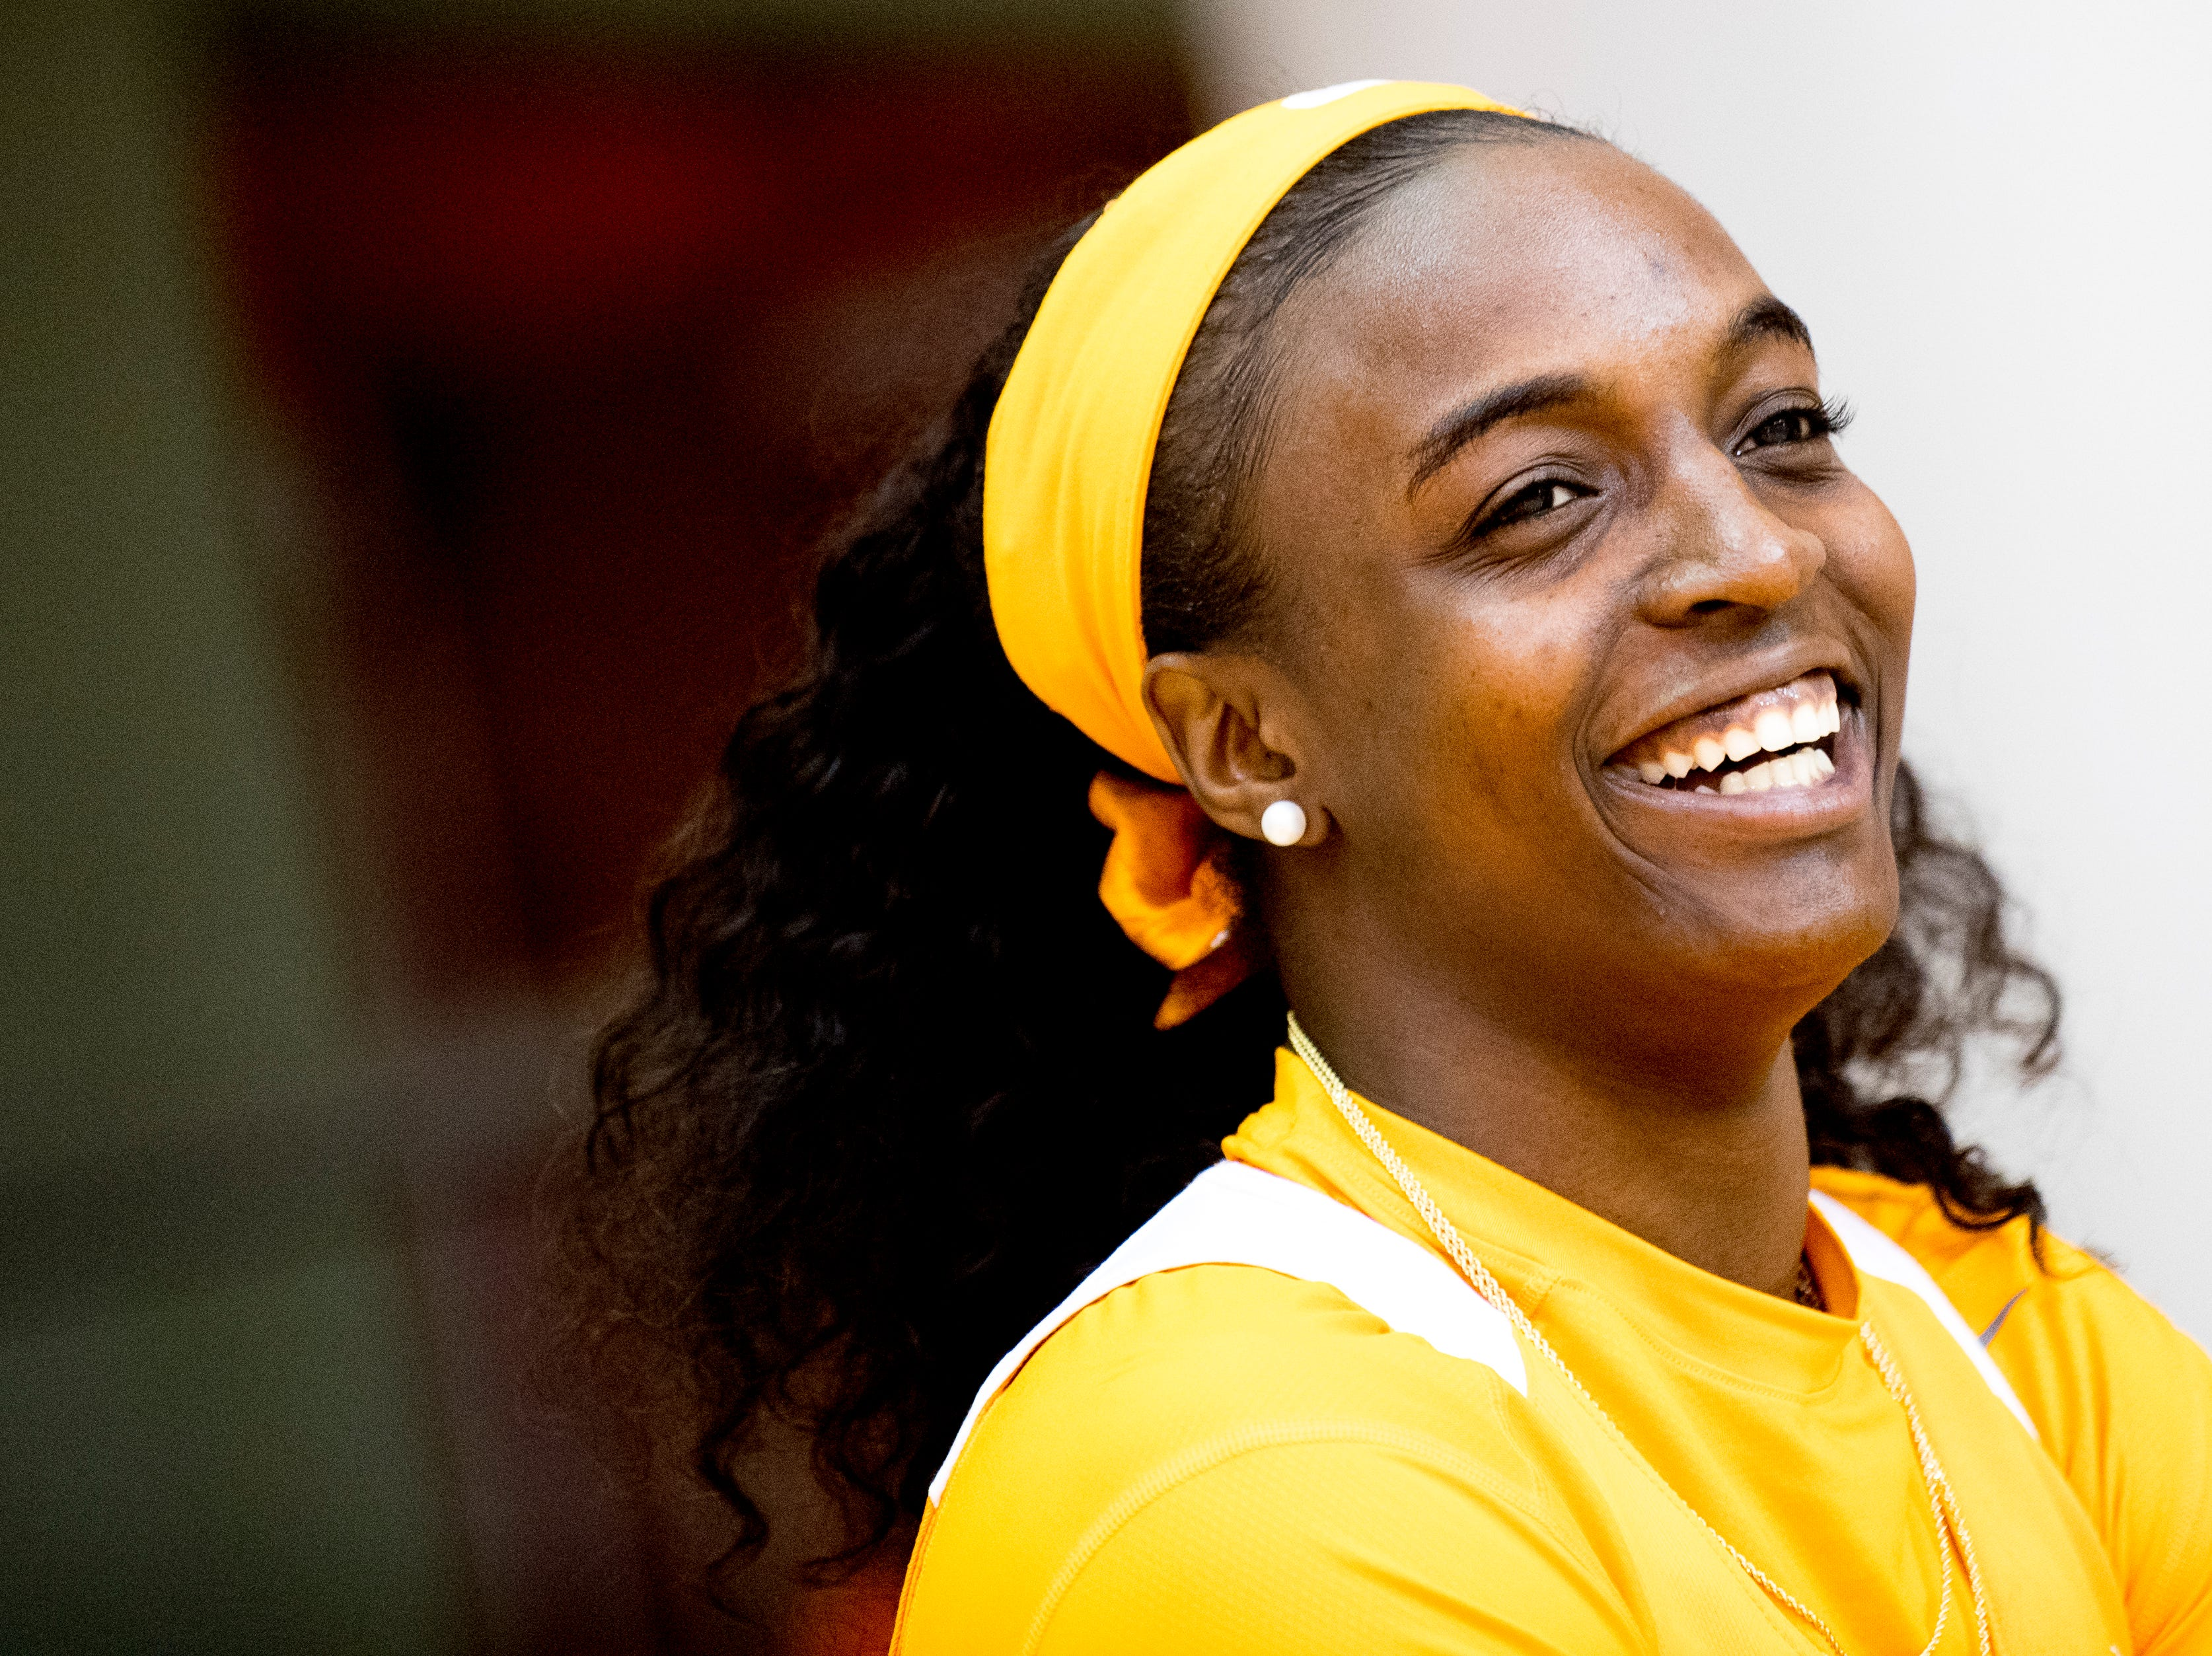 Meme Jackson (10) laughs during Tennessee Lady Vols Media Day at Pratt Pavilion in Knoxville, Tennessee on Thursday, October 25, 2018.